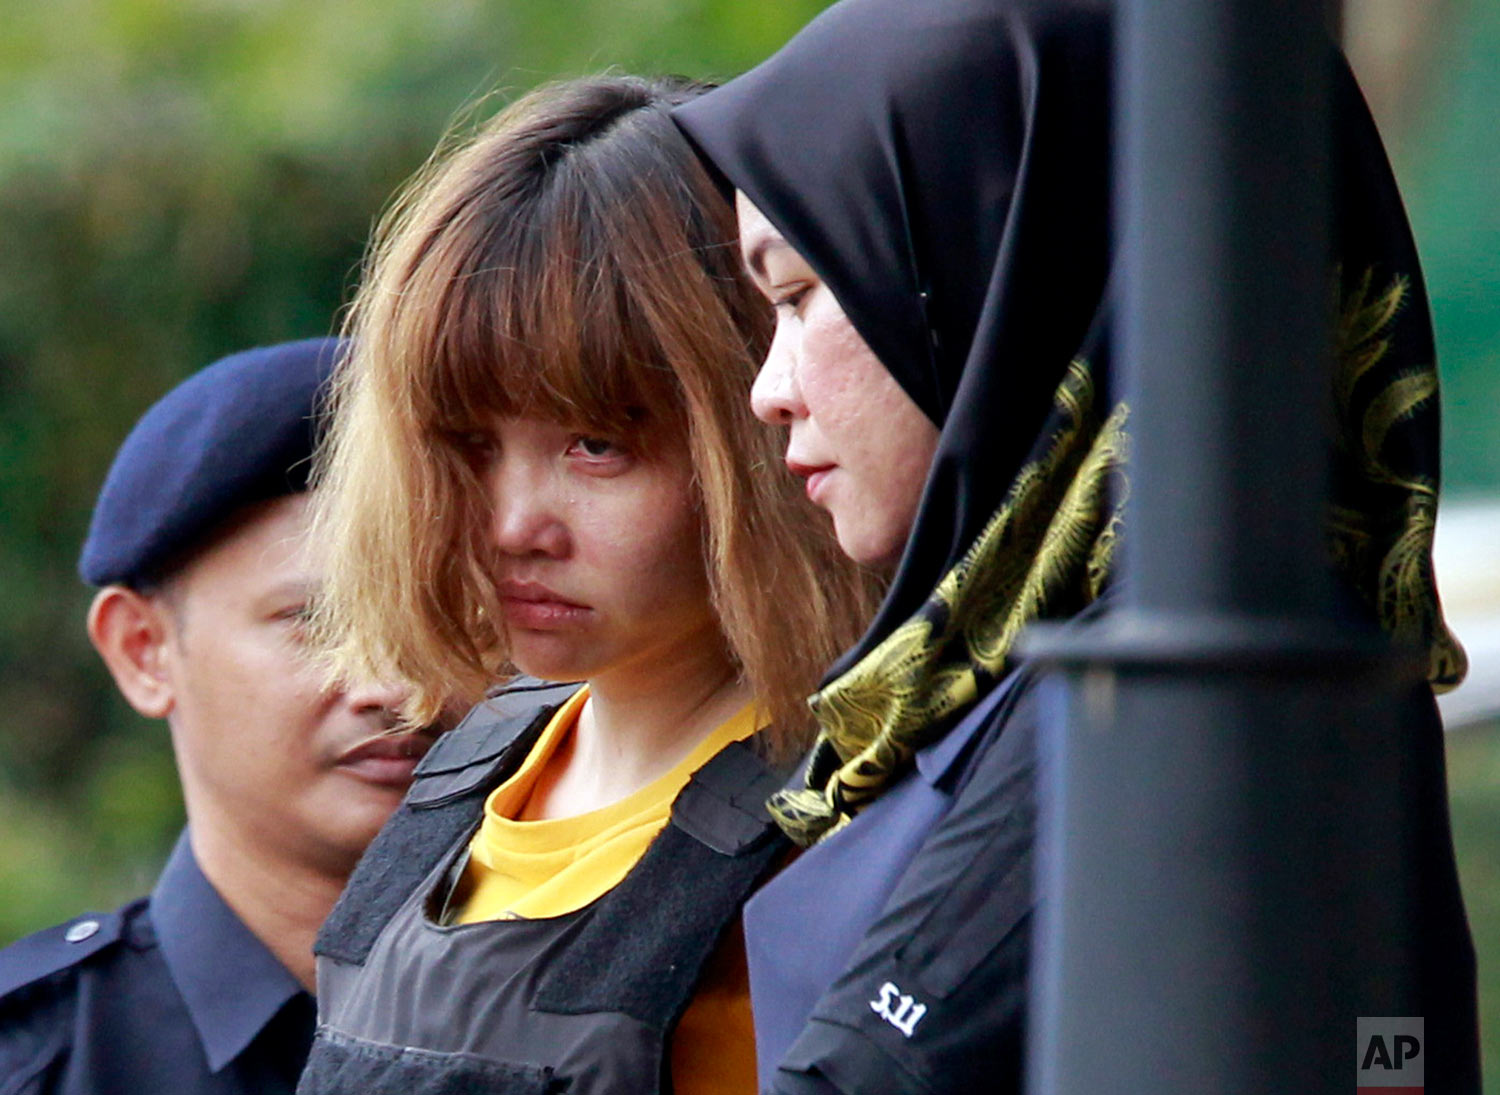 In this March 1, 2017, photo, Vietnamese Doan Thi Huong, center, a suspect in the ongoing investigation into the assassination of Kim Jong Nam, is escorted by police from Sepang court in Sepang, Malaysia. Appearing calm and solemn, two young women accused of smearing VX nerve agent on Kim Jong Nam, the estranged half brother of North Korea's leader, were charged with murder. (AP Photo/Daniel Chan)